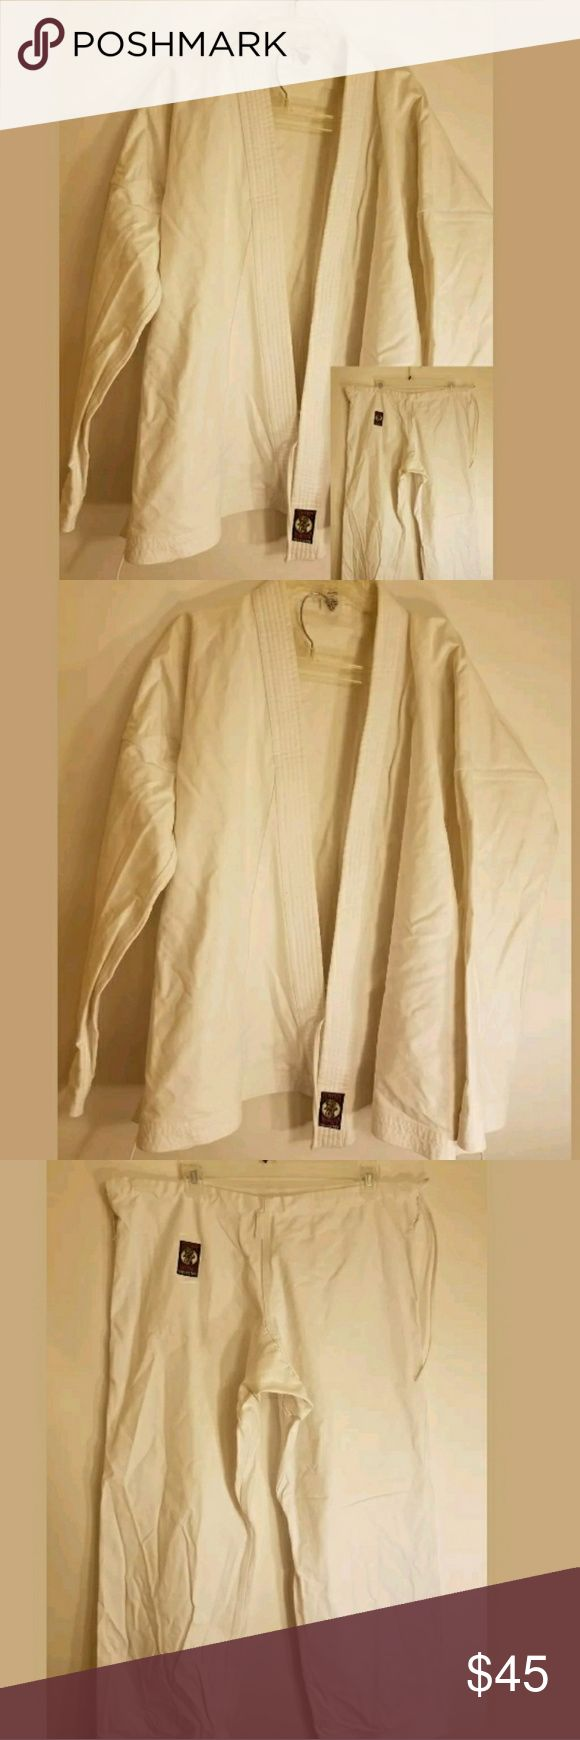 """Men's Sz 6 white martial arts uniform Centrum Iron Men's Sz 6 white martial arts uniform Centrum Iron Man  Top: Underarm to Underarm about 31"""" Length about 31"""" Sleeves about 21""""  Bottom: Inseam about 33"""" Outseam about 43"""" Other"""